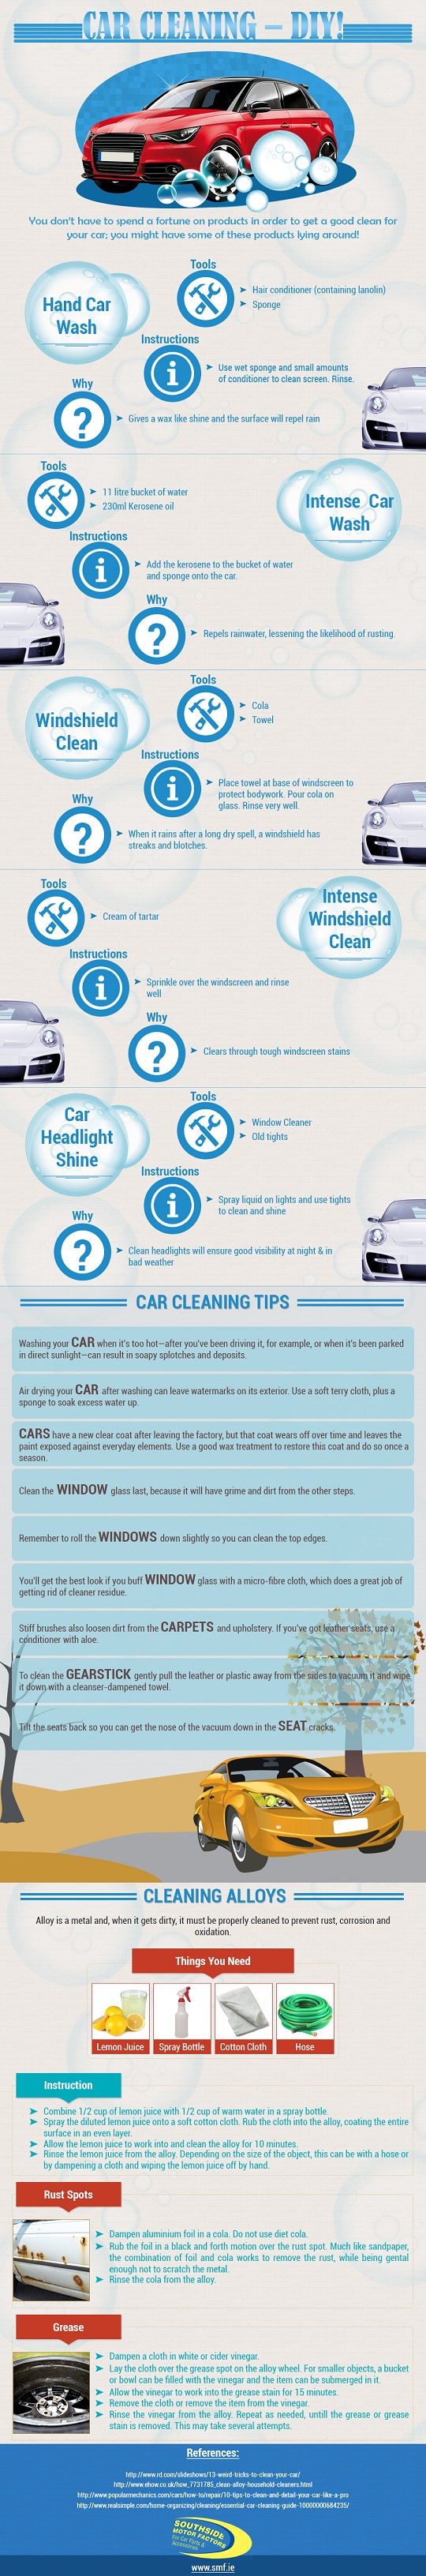 Car Cleaning DIY - Car Wash